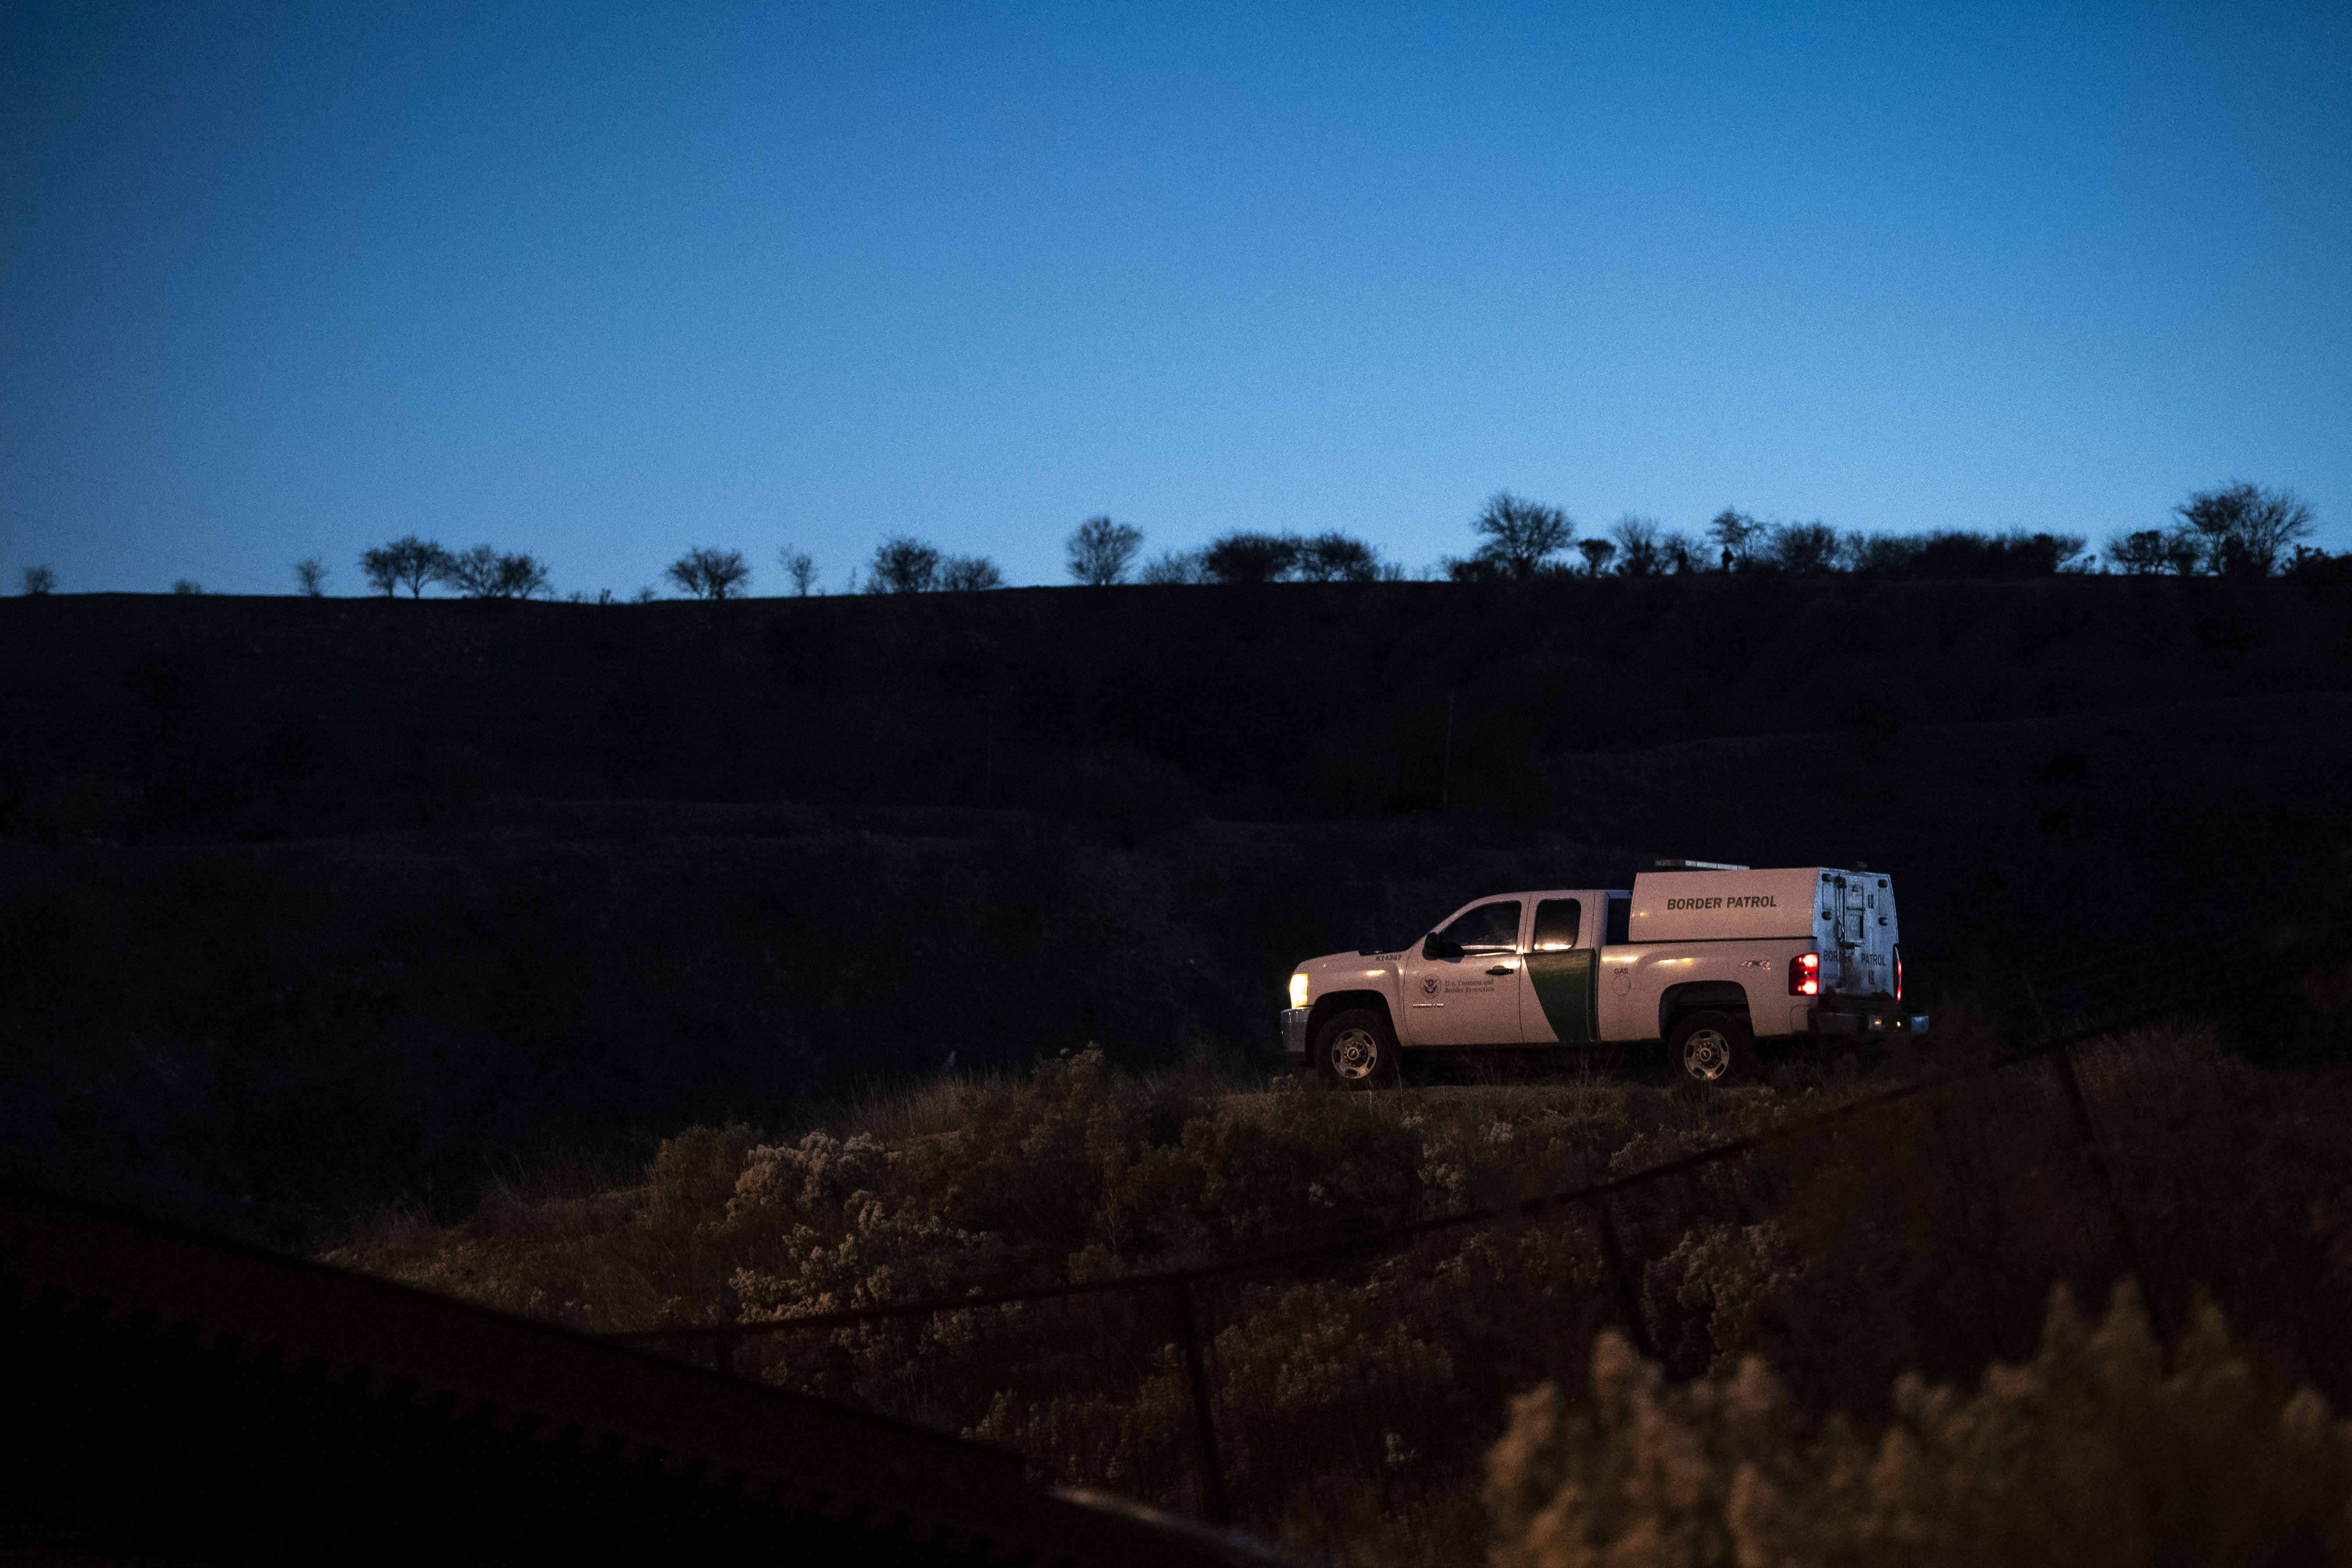 Border Patrol agent Matthew Bowen admits to hitting a migrant with his truck on purpose - The Washington Post